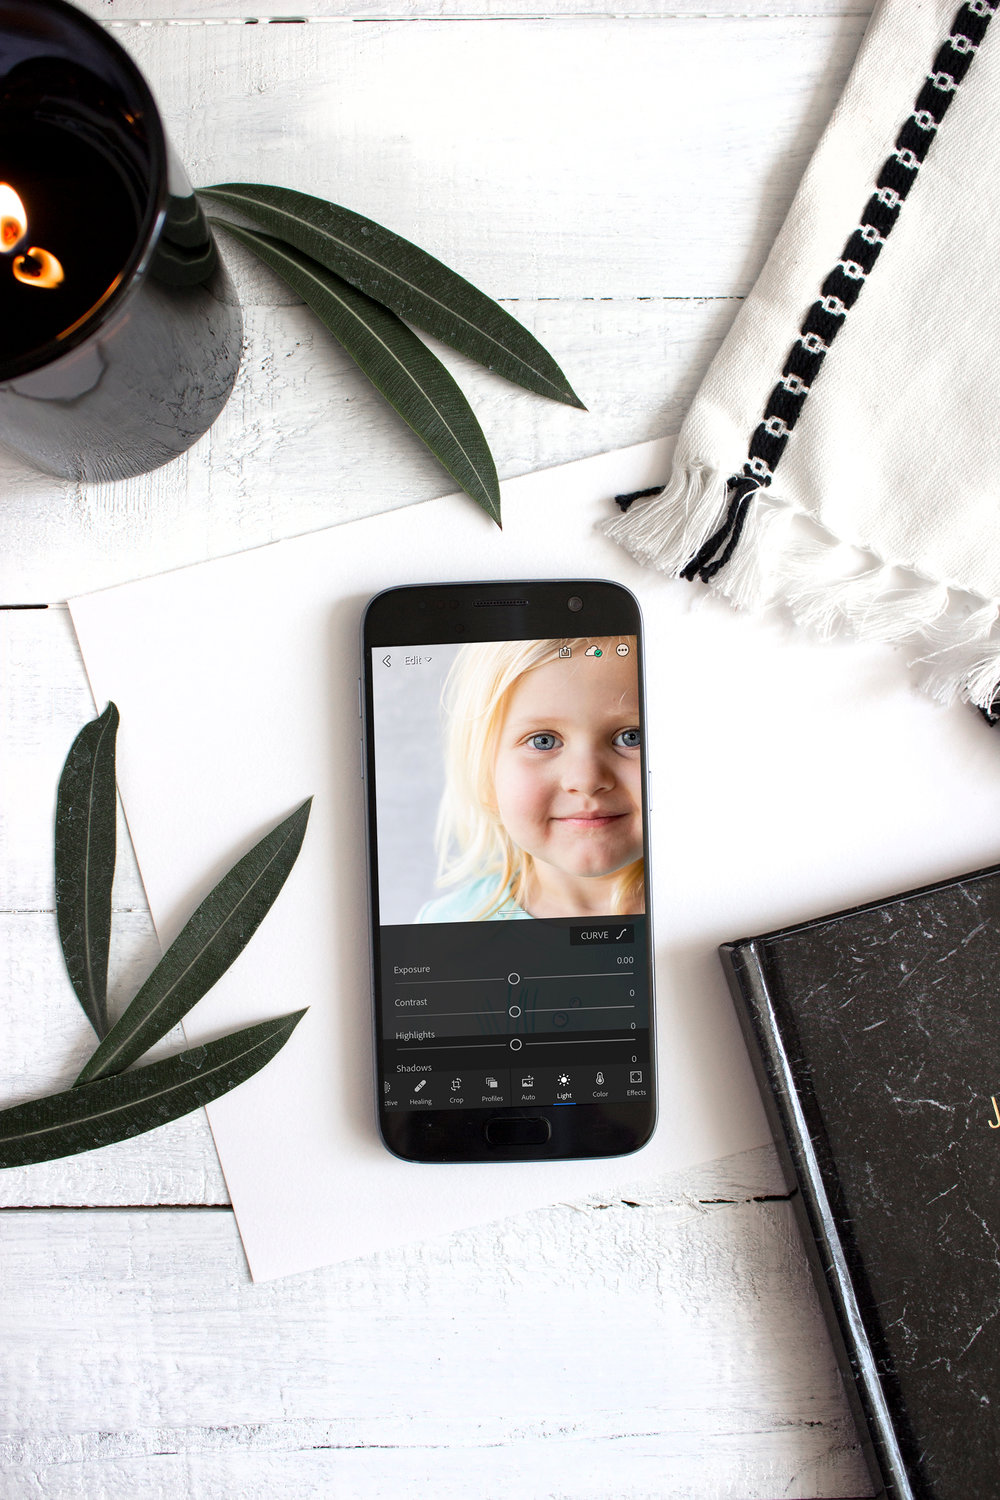 Photo shows a phone with Adobe Lightroom CC opened to editing screen. Lightroom is a great app for on-the-go-entrepreneurs like bloggers. It allows you to use presets and customize photos for your brand.